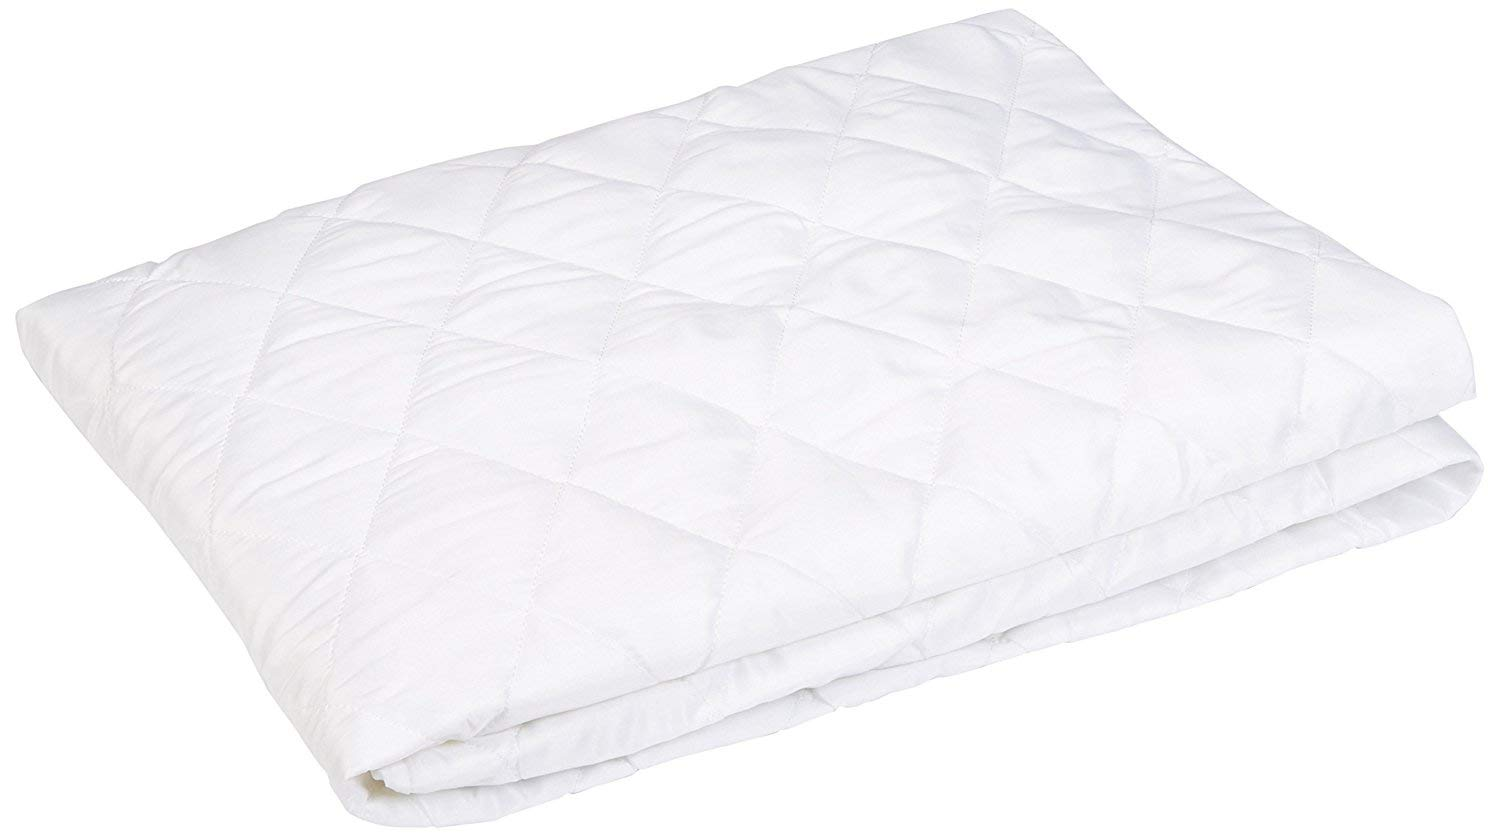 Home Sweet Home Dreams Inc Mattress Pads Twin, Size Quilted Mattress Topper-Hypoallergenic Waterproof Protector